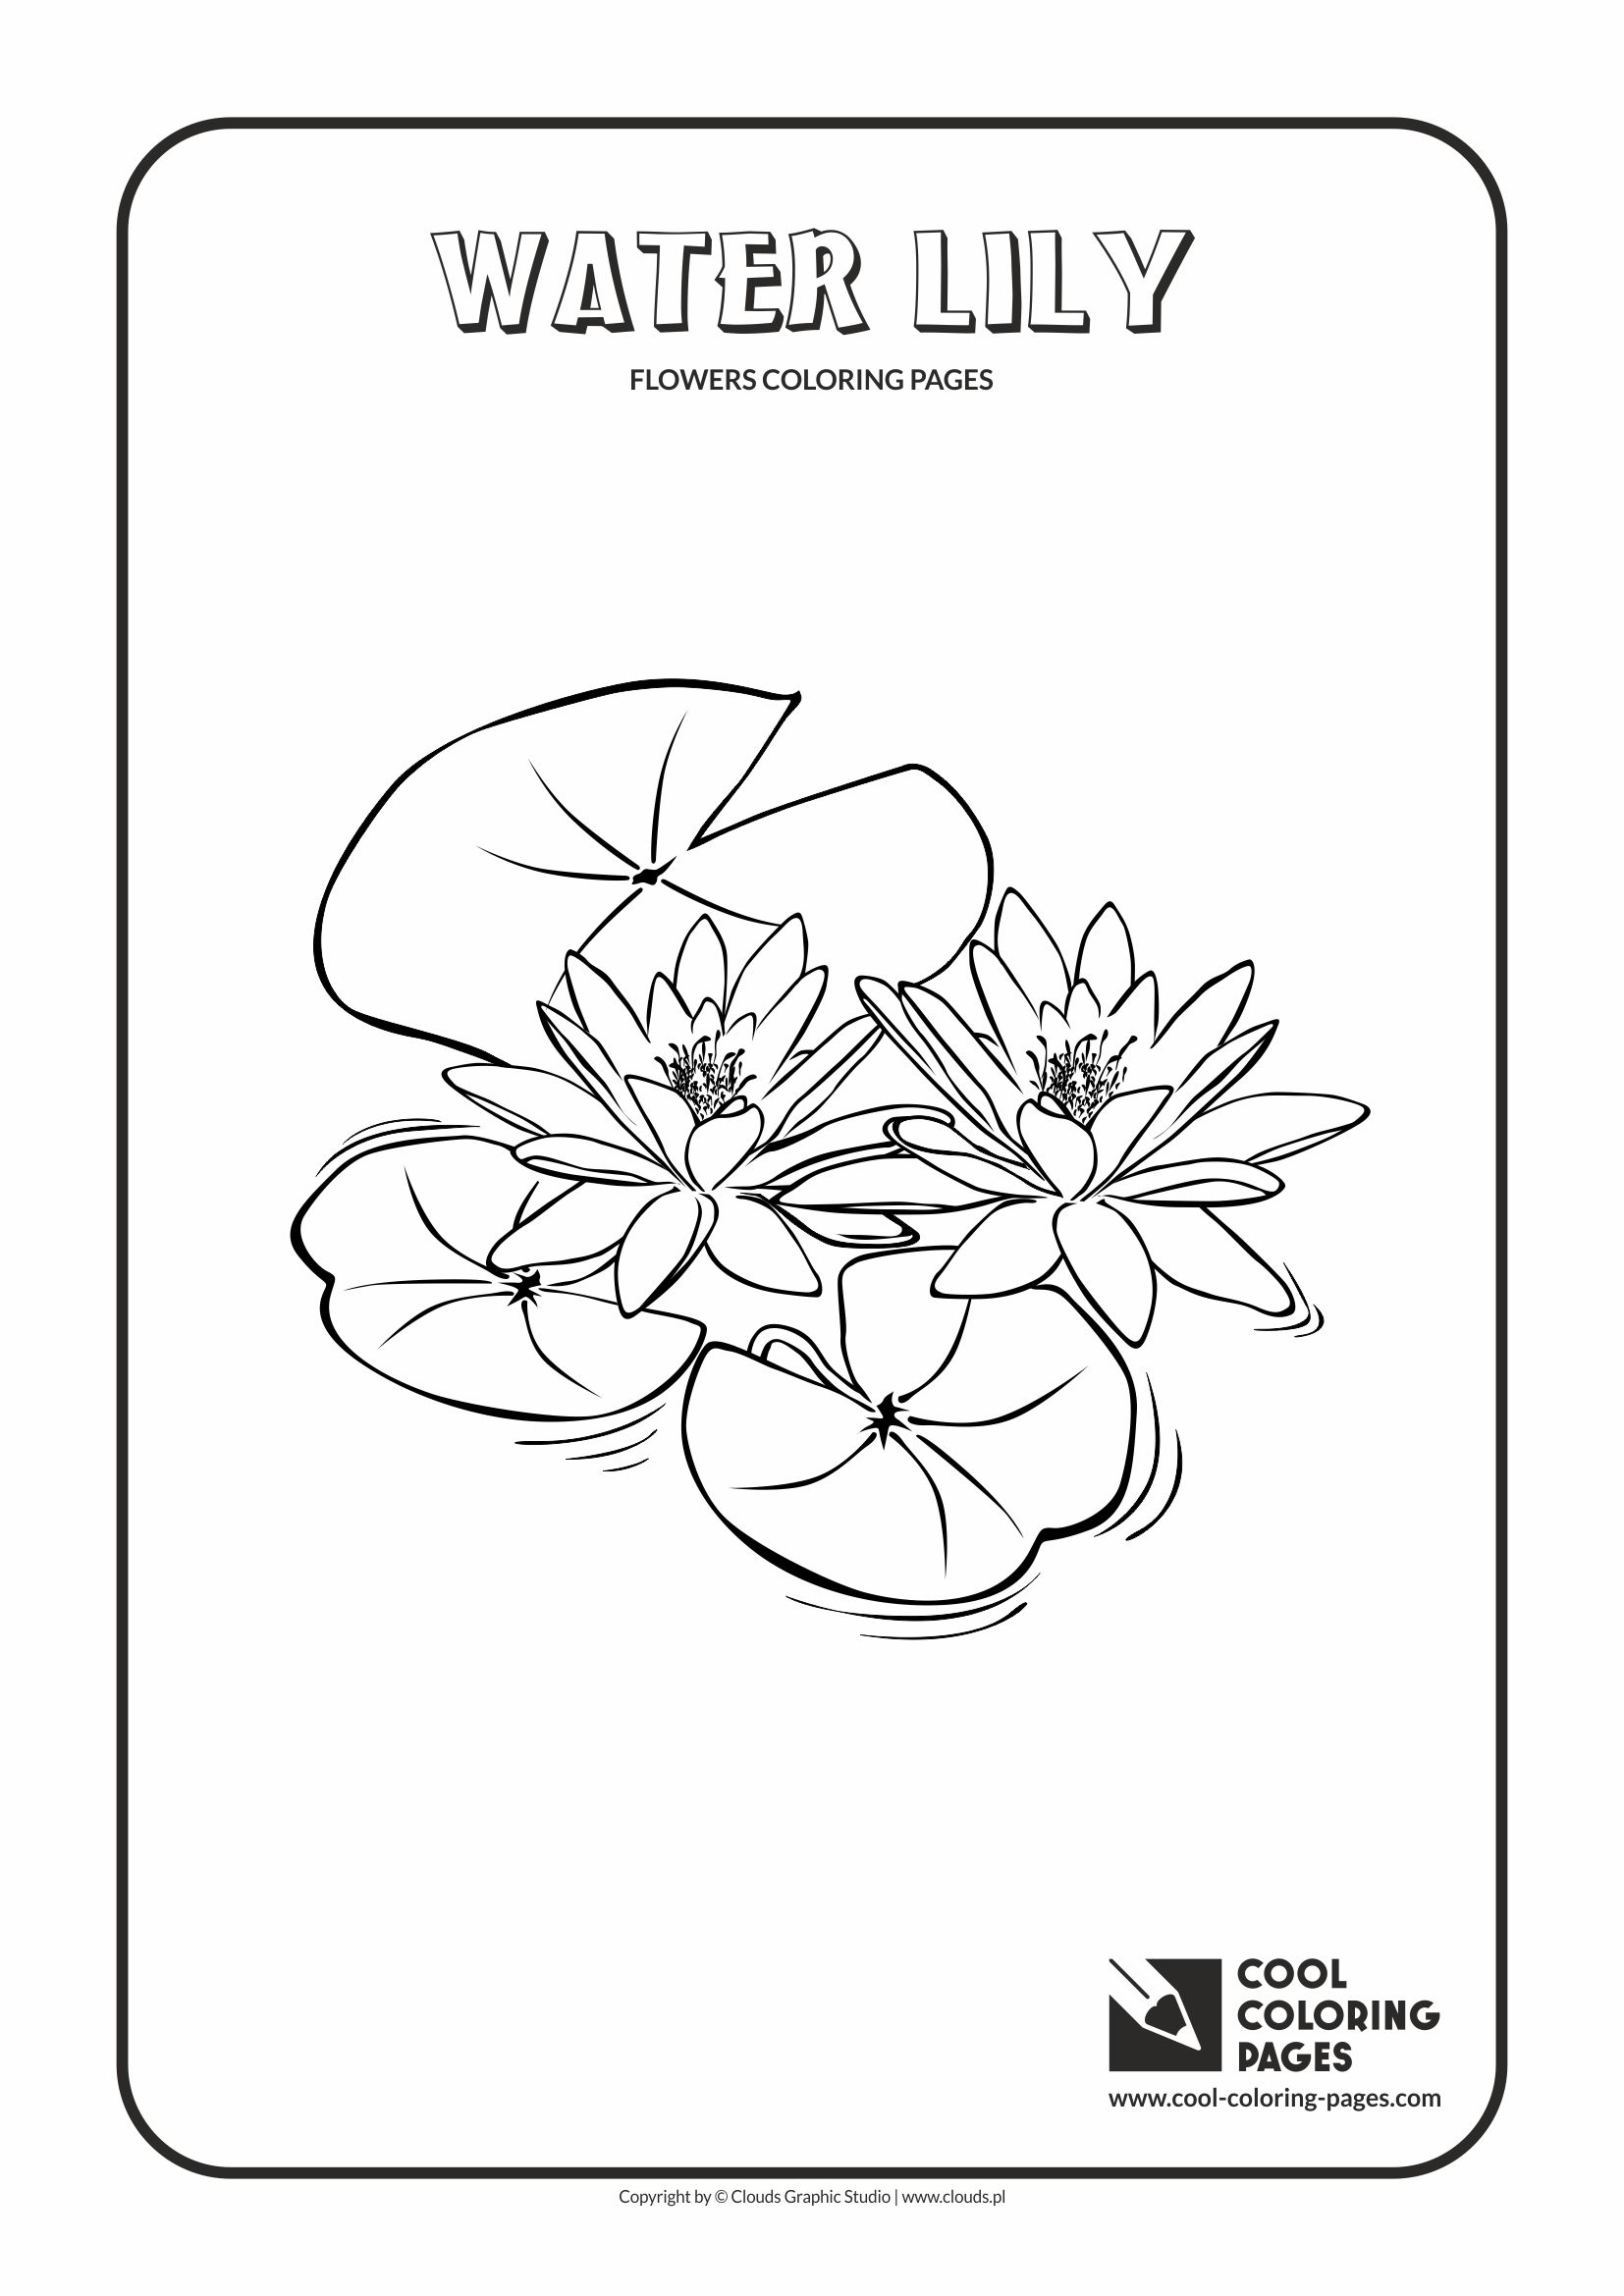 Cool Coloring Pages Flowers Coloring Pages Cool Coloring